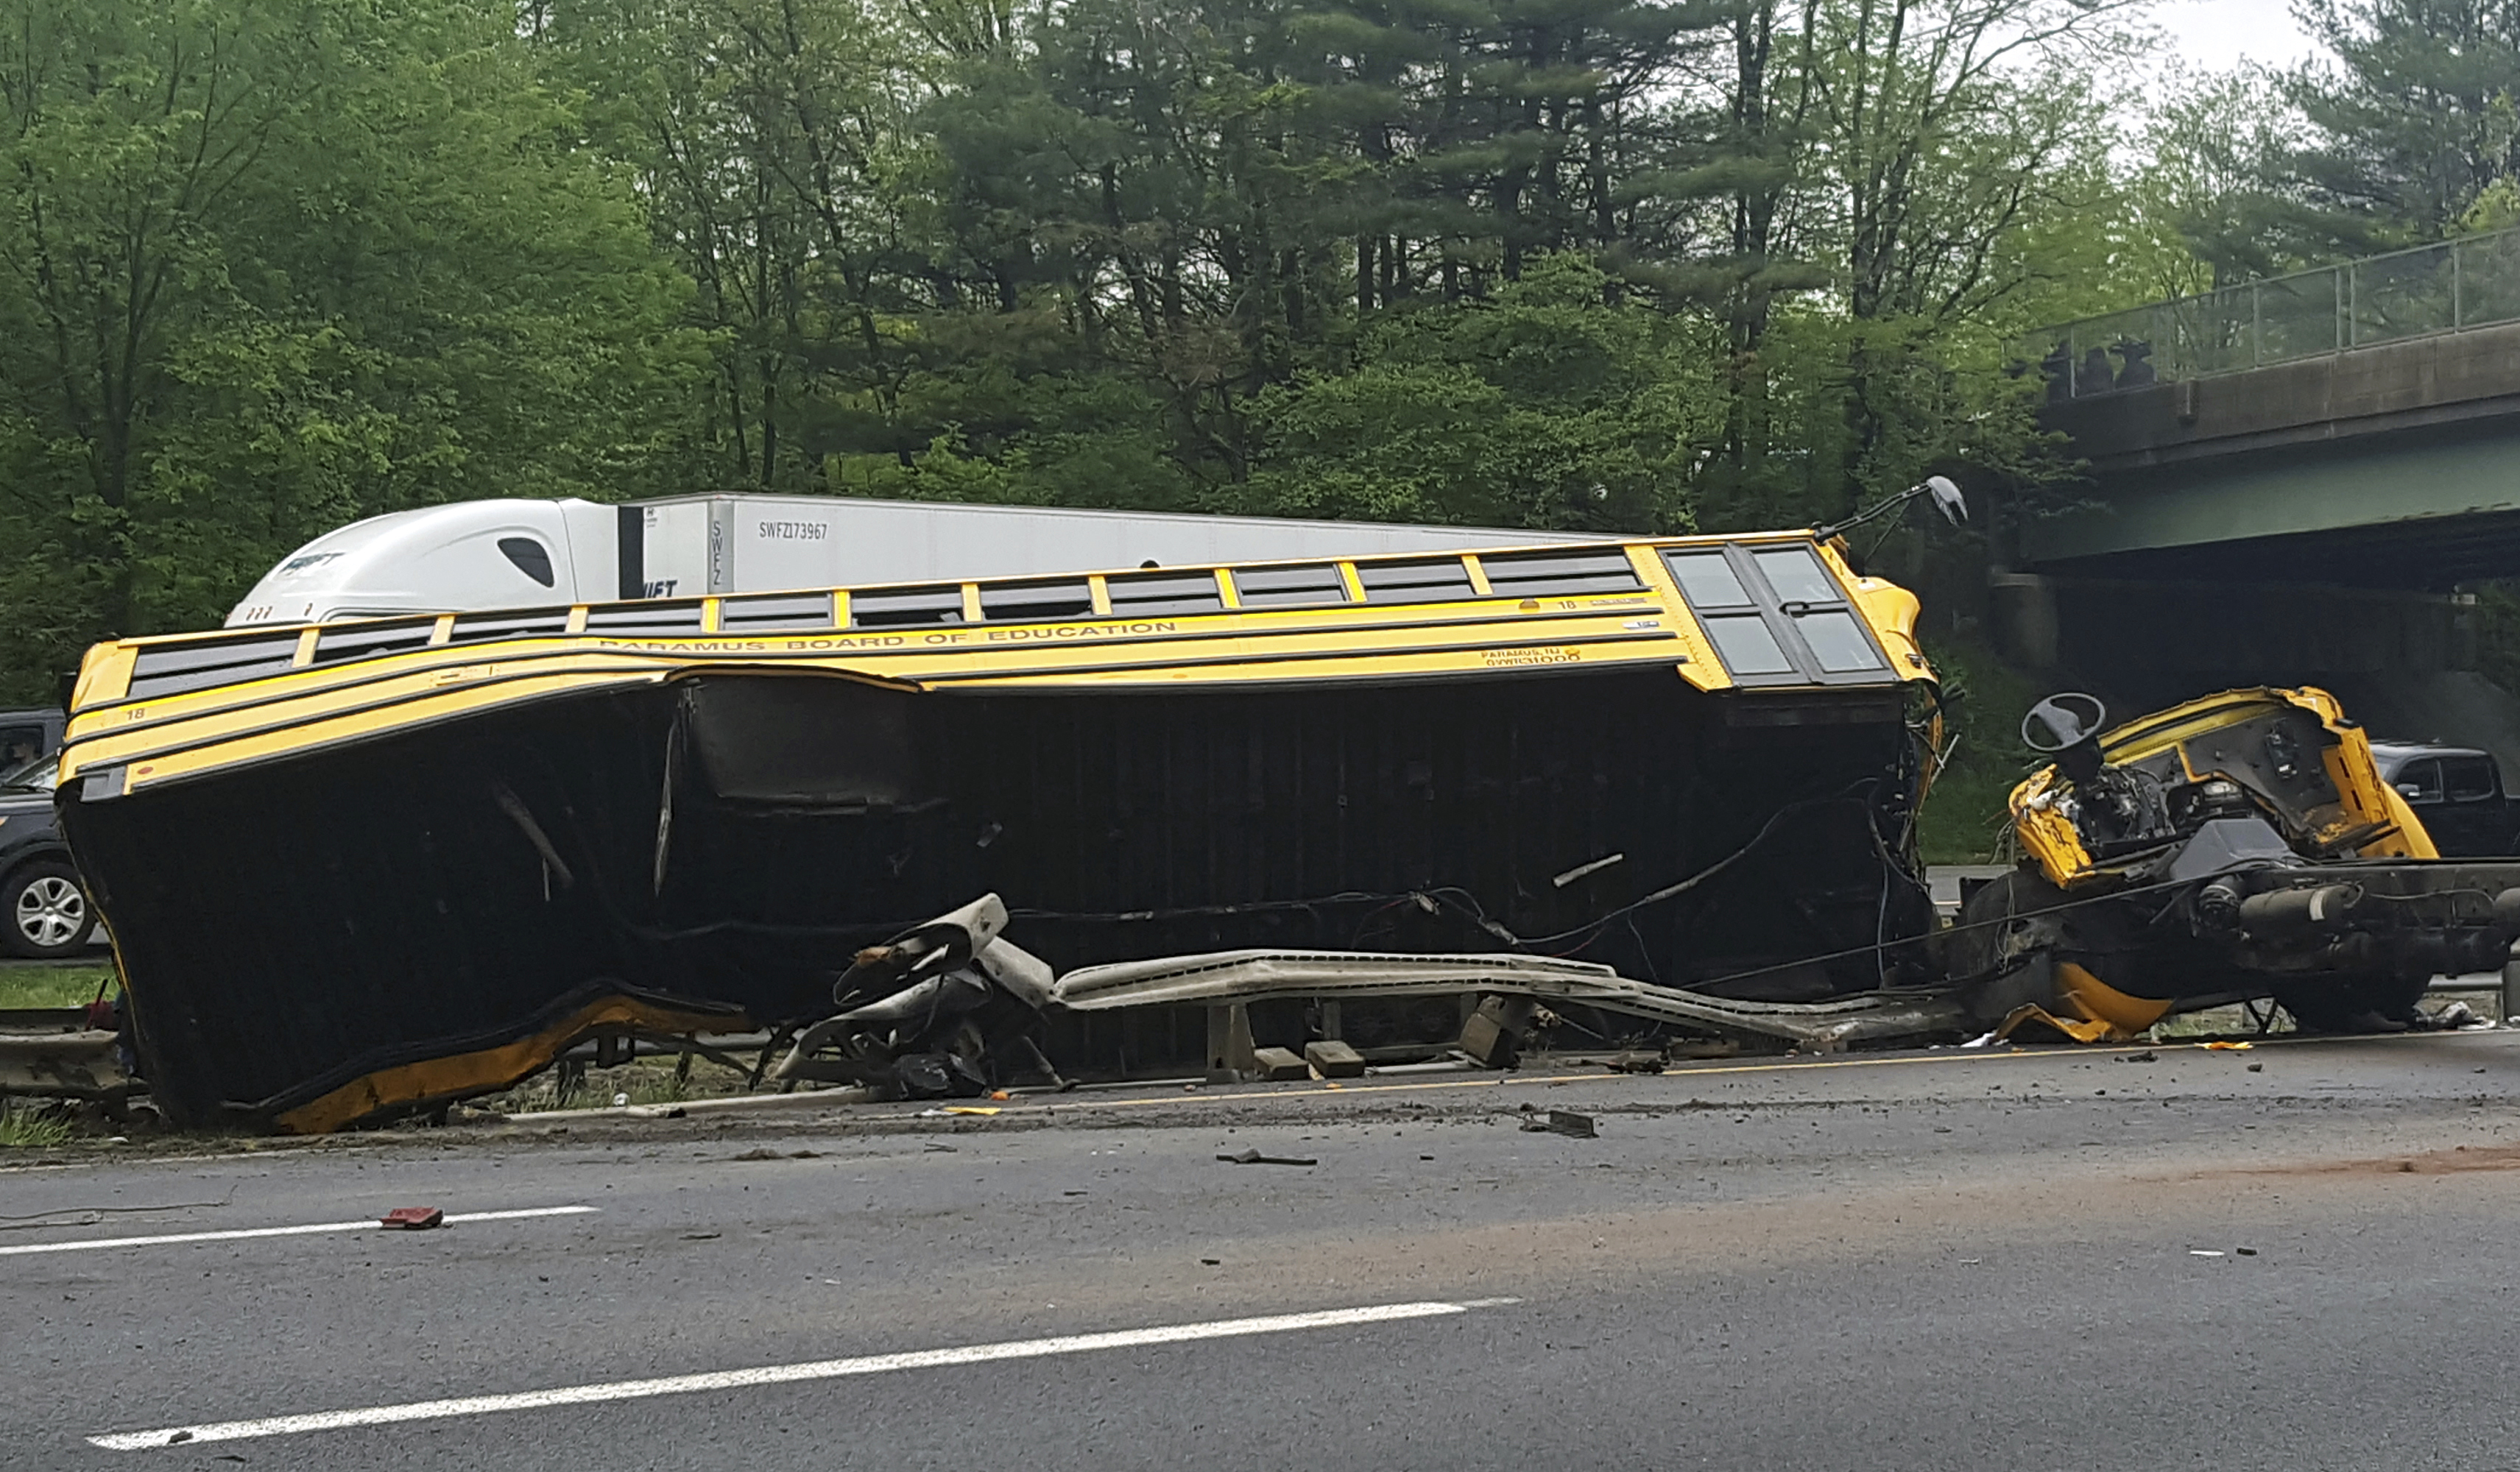 <div class='meta'><div class='origin-logo' data-origin='none'></div><span class='caption-text' data-credit='Chrissy Oleszek via AP'>This photo shows an overturned school bus after it collided with a dump truck, injuring multiple people, on Interstate 80 in Mount Olive, N.J., Thursday, May 17, 2018.</span></div>